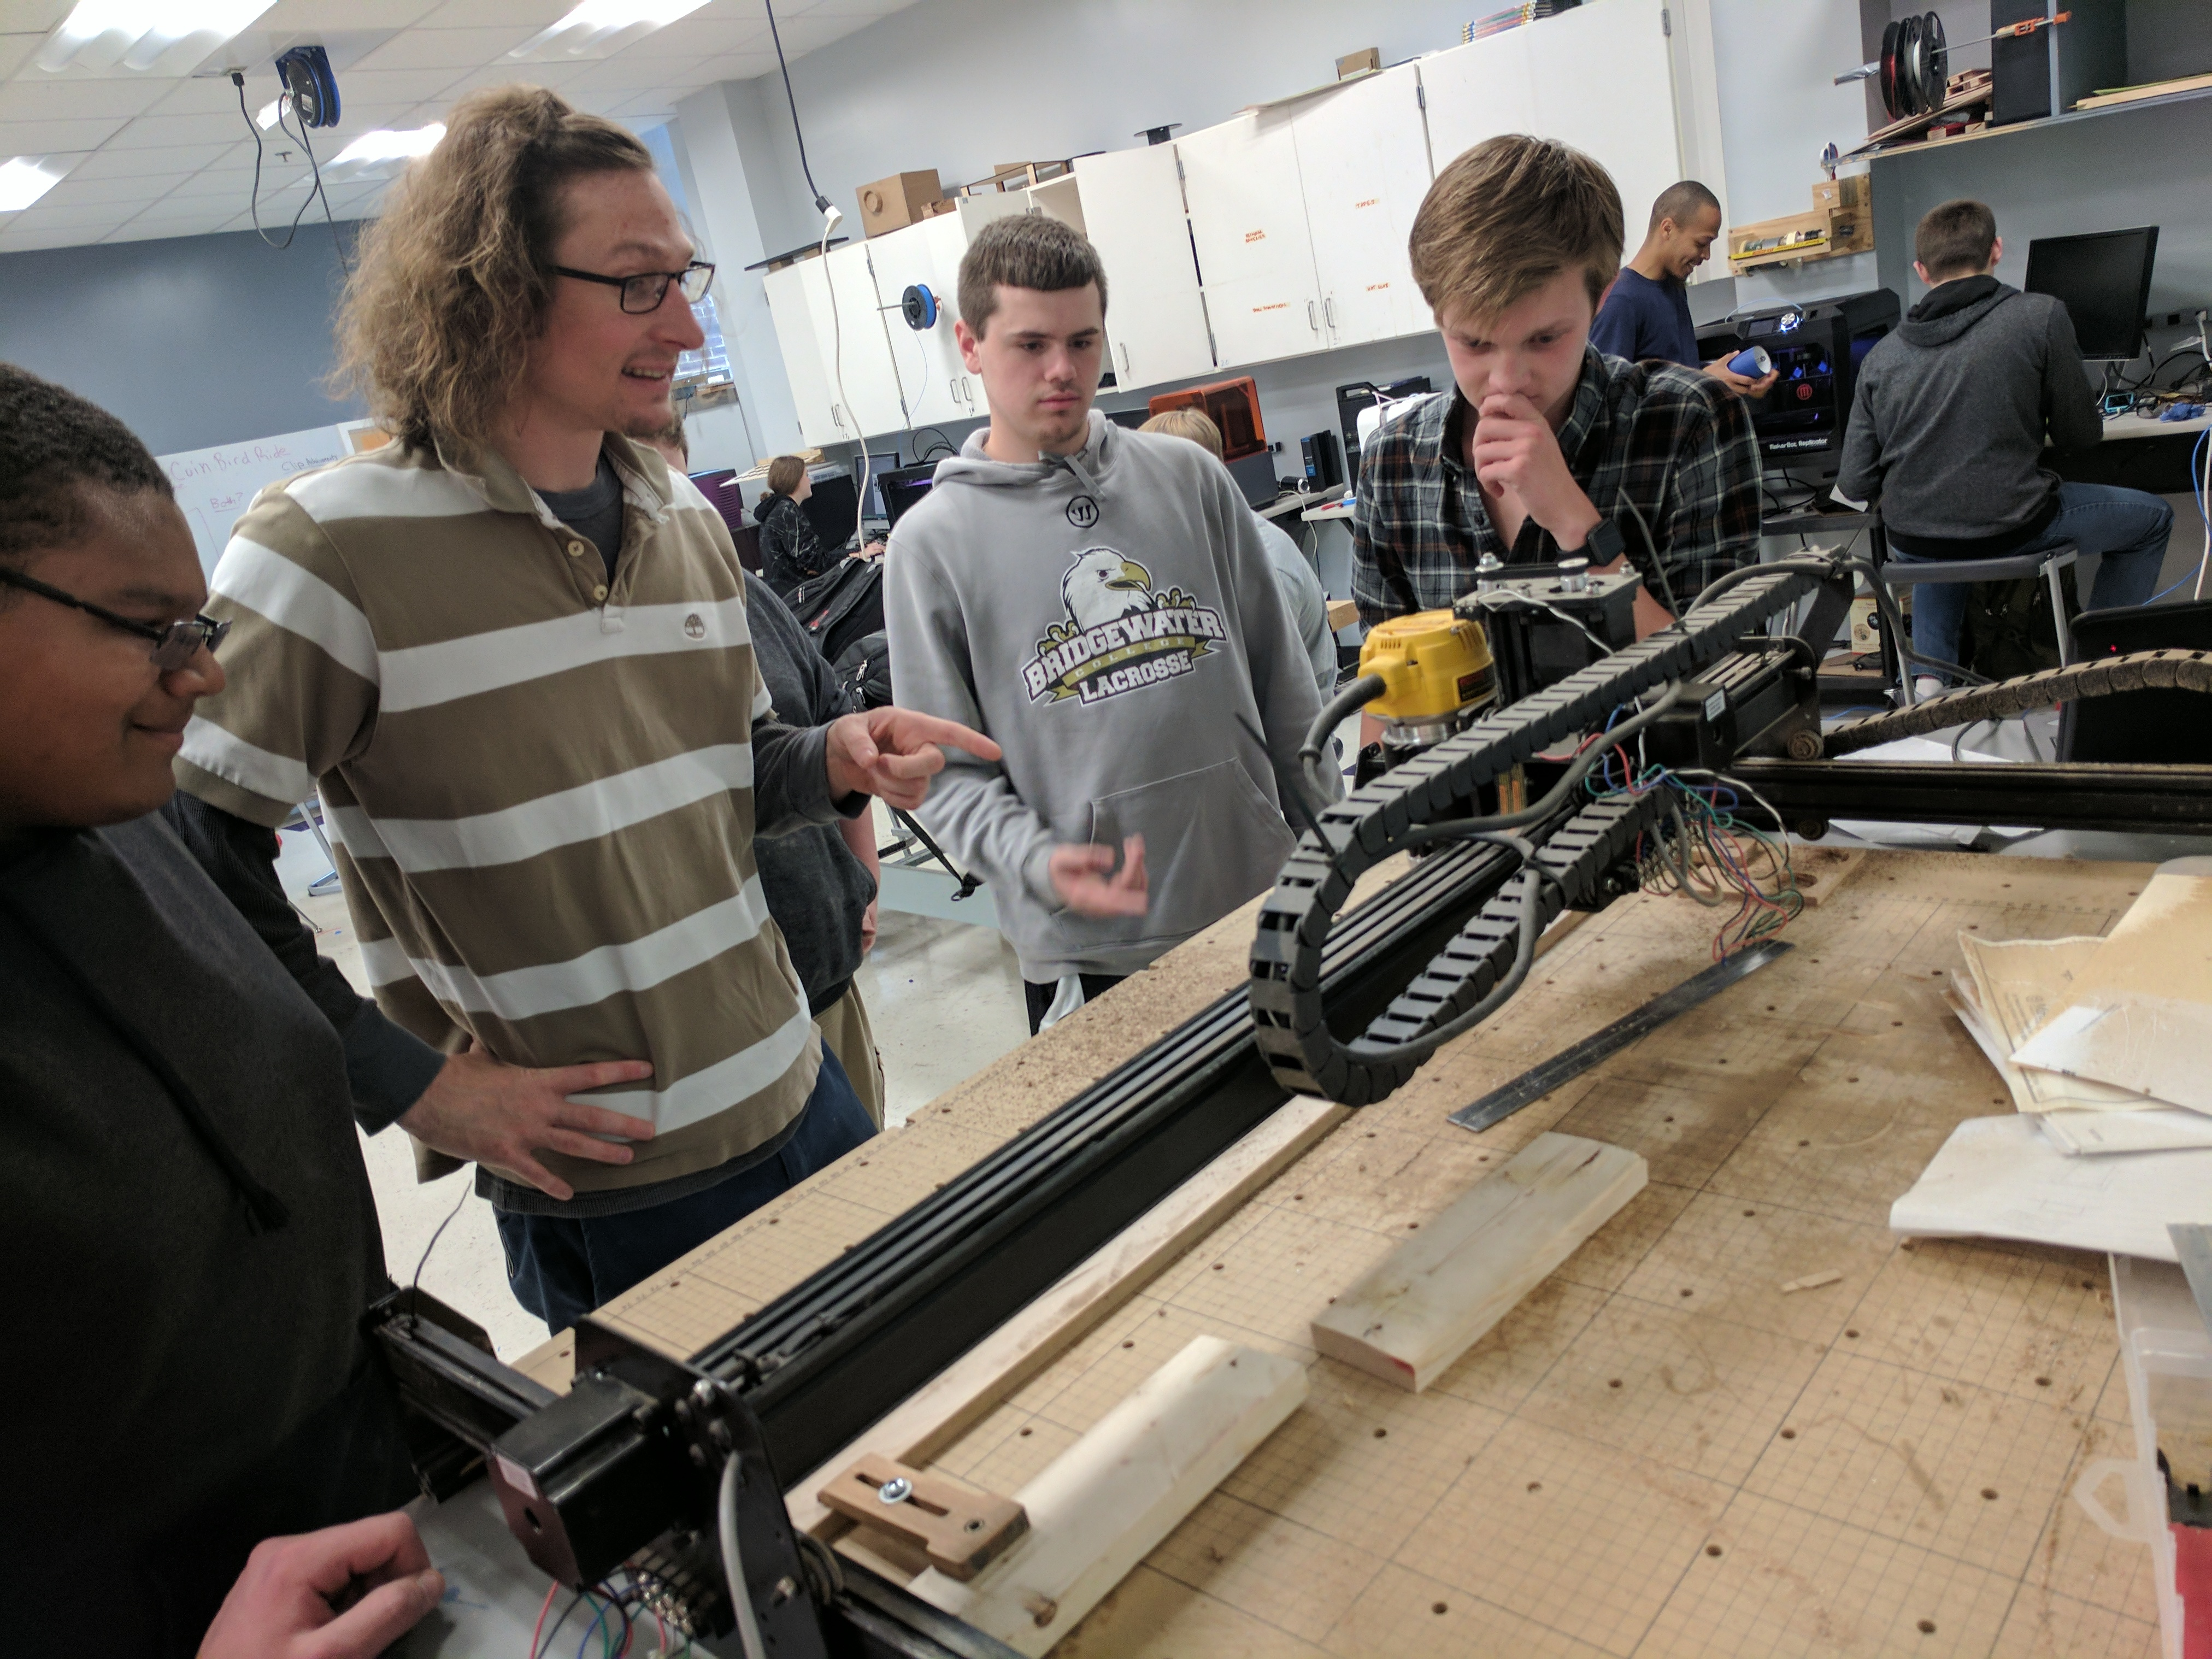 A school district is building a DIY broadband network - The